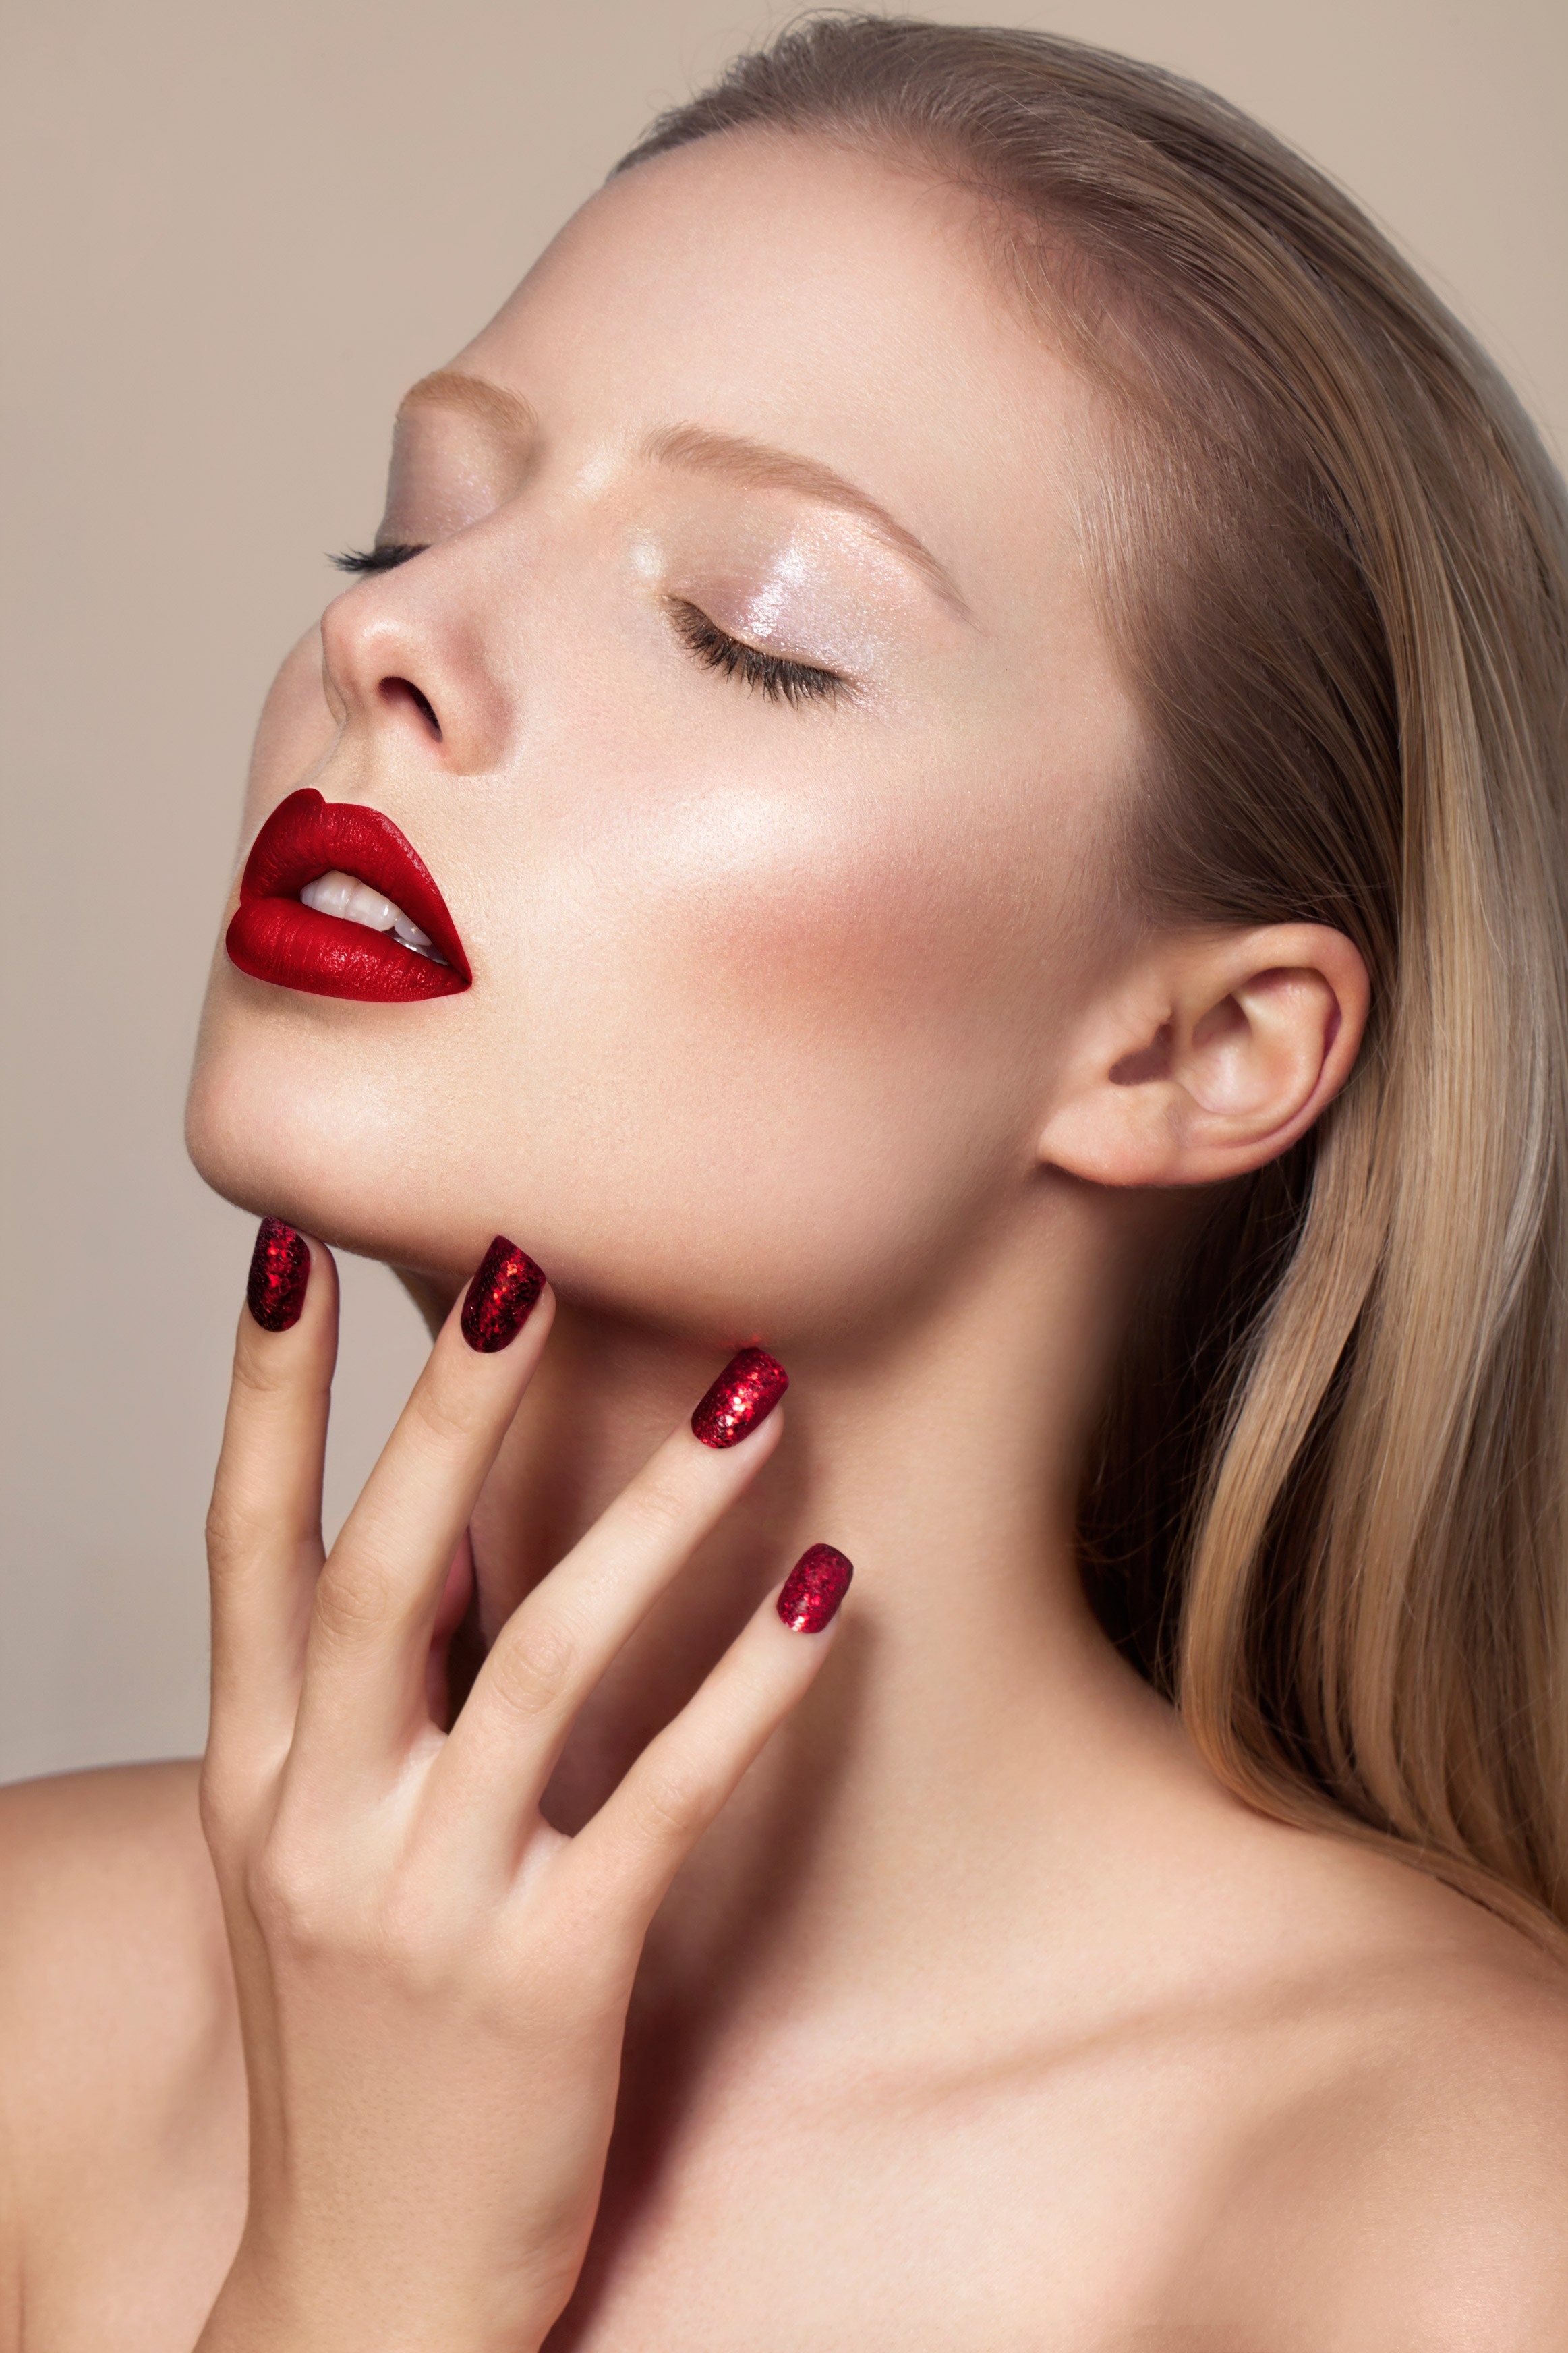 beauty magazine hair photographer pink lips pro london blonde ruth rose ruthrose margaux campaign project